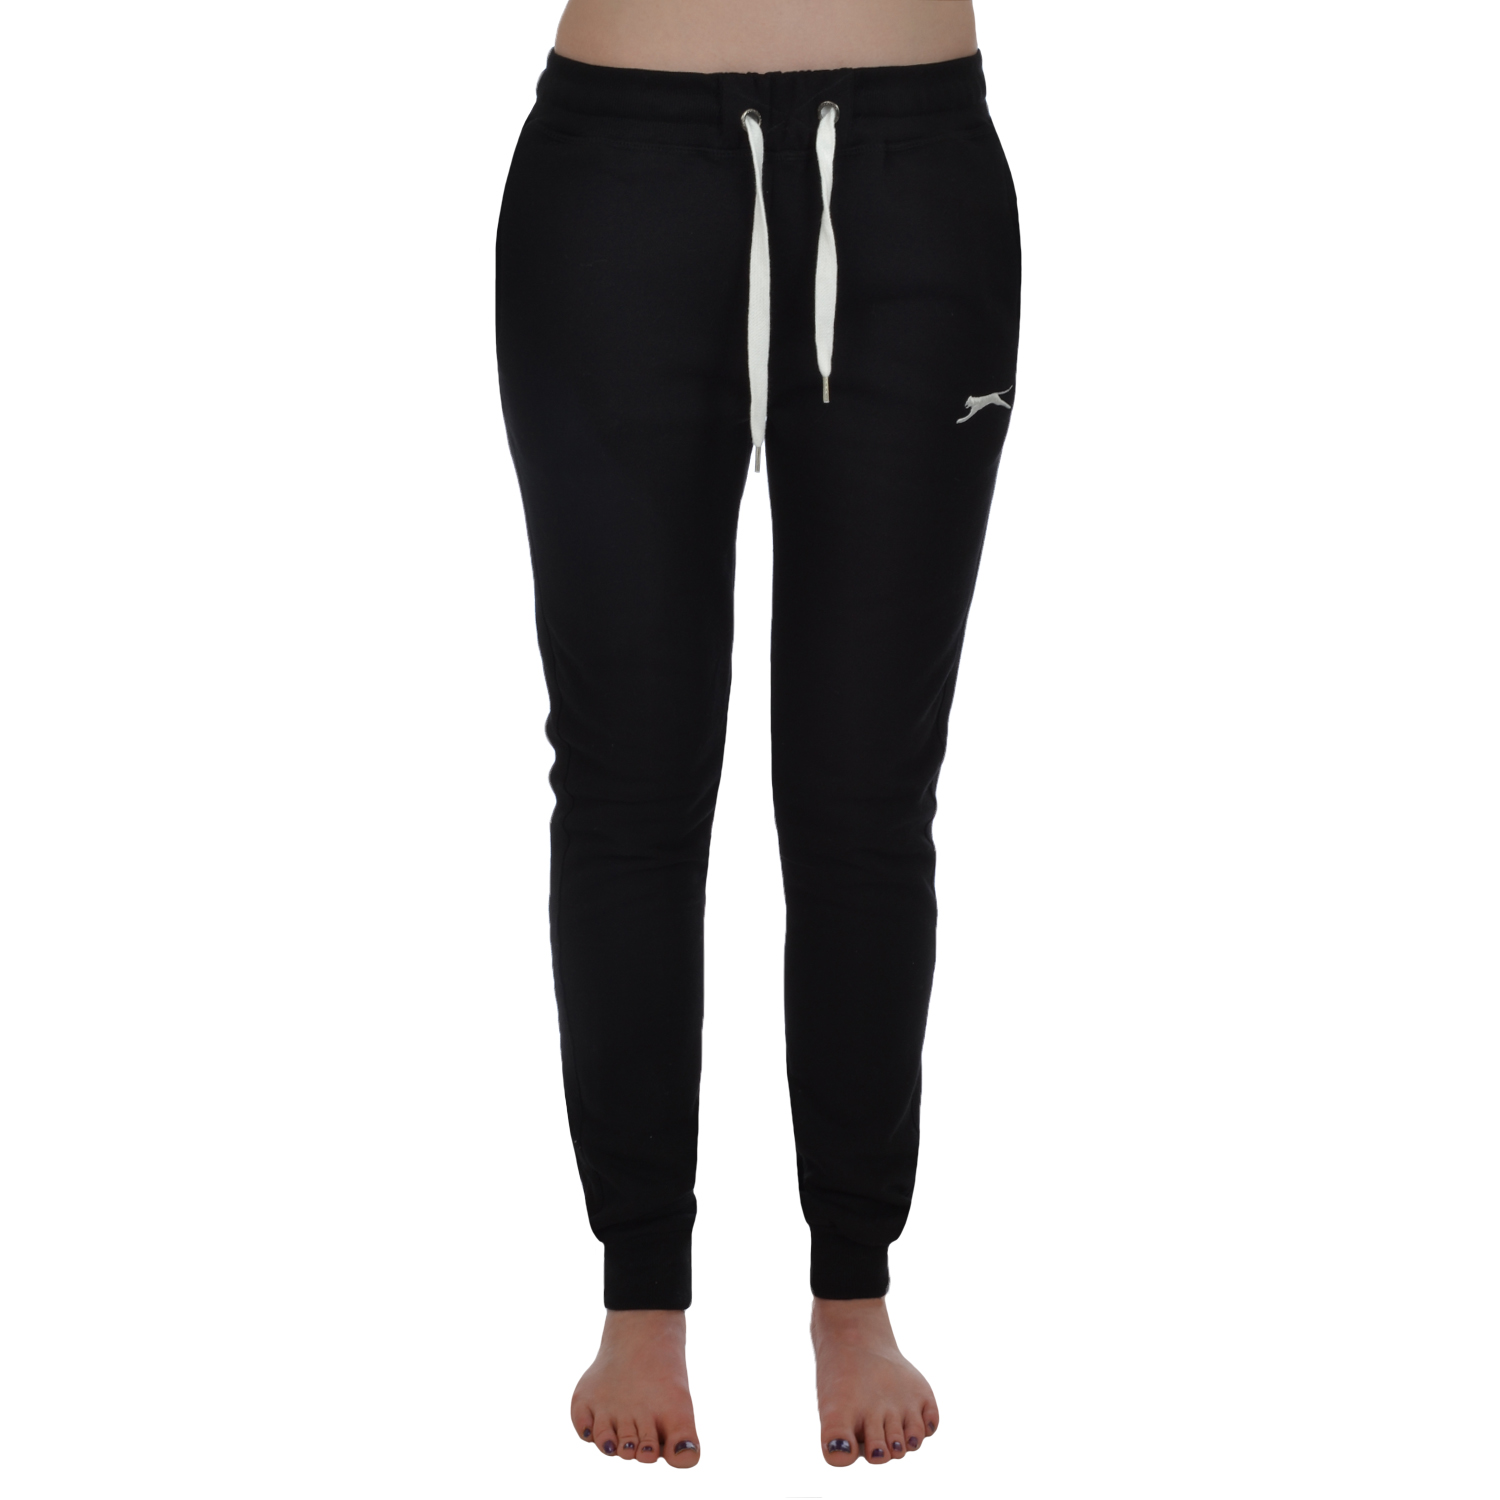 Lightweight, breathable yoga pants designed to minimize distraction and maximize In-store yoga, on us· Free shipping and returns· Snip it, hemming's on us.